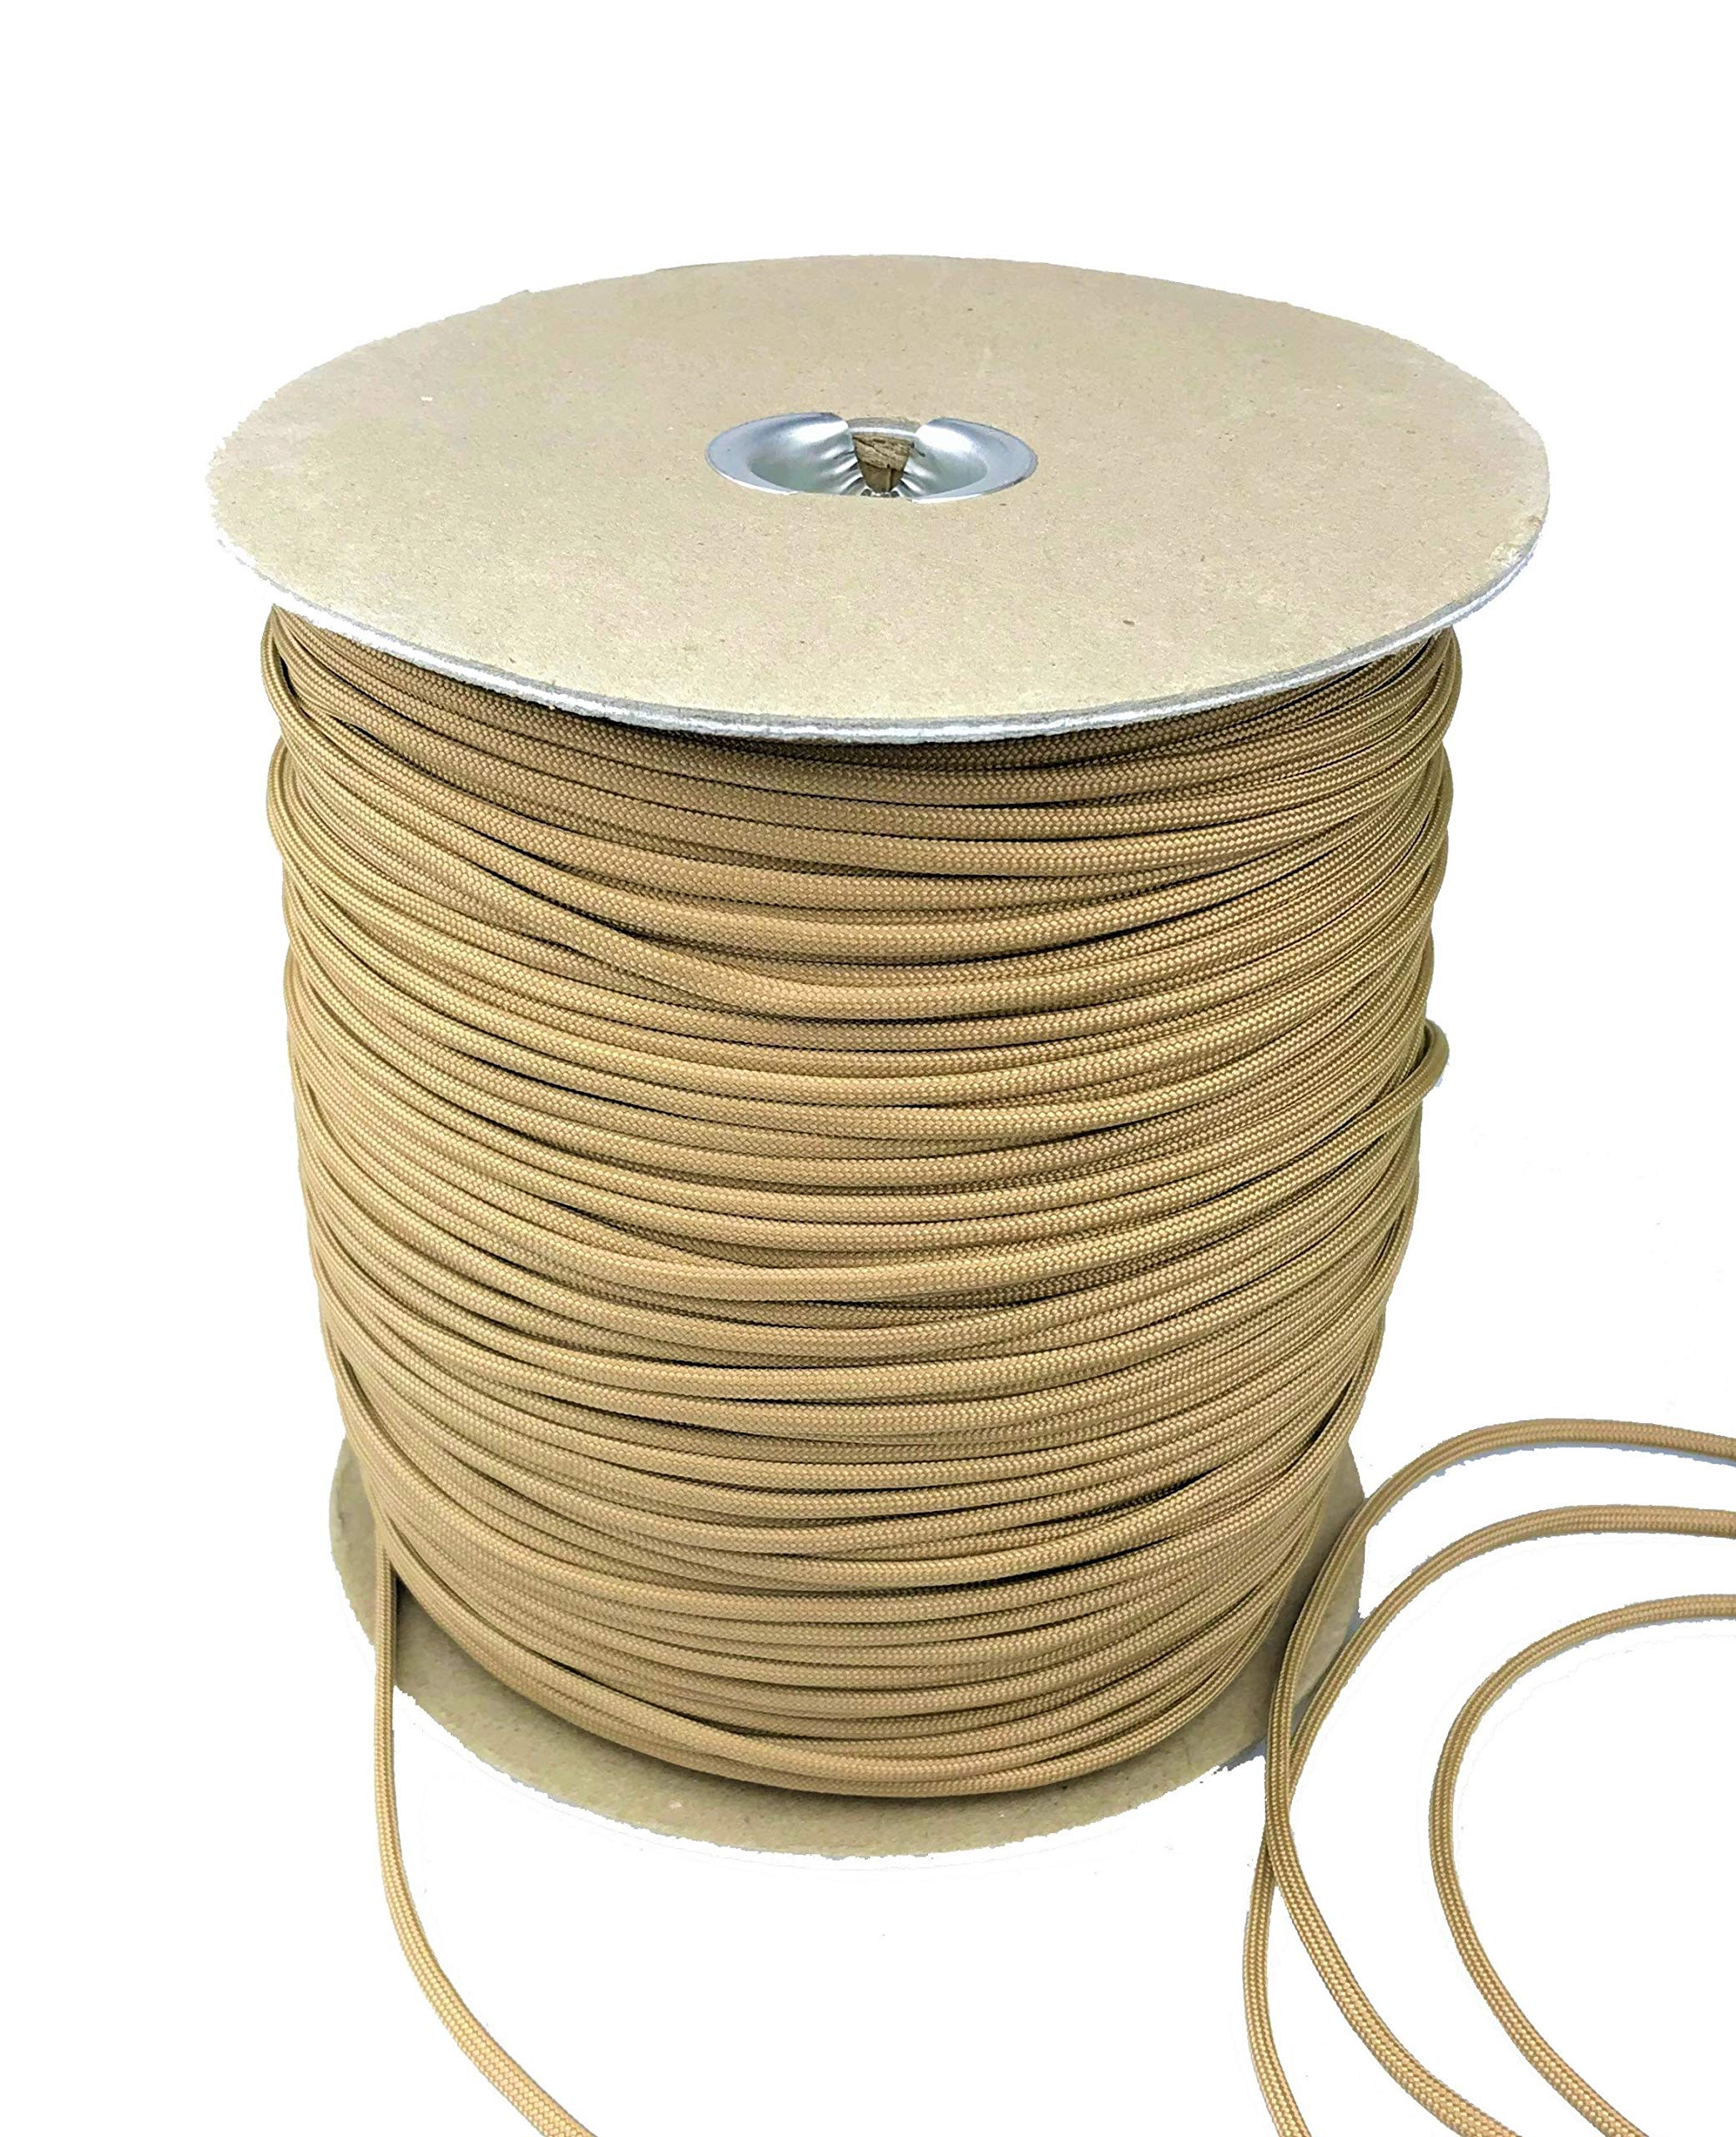 Paracord 550 Type III 7 Strand Multi-Purpose Parachute Cord in 1000 and 100 Foot Spools. Used for Camping, Hiking, Boating, Survival, and Crafting. 100% Nylon-Made in the USA (Tan, 1000.00)